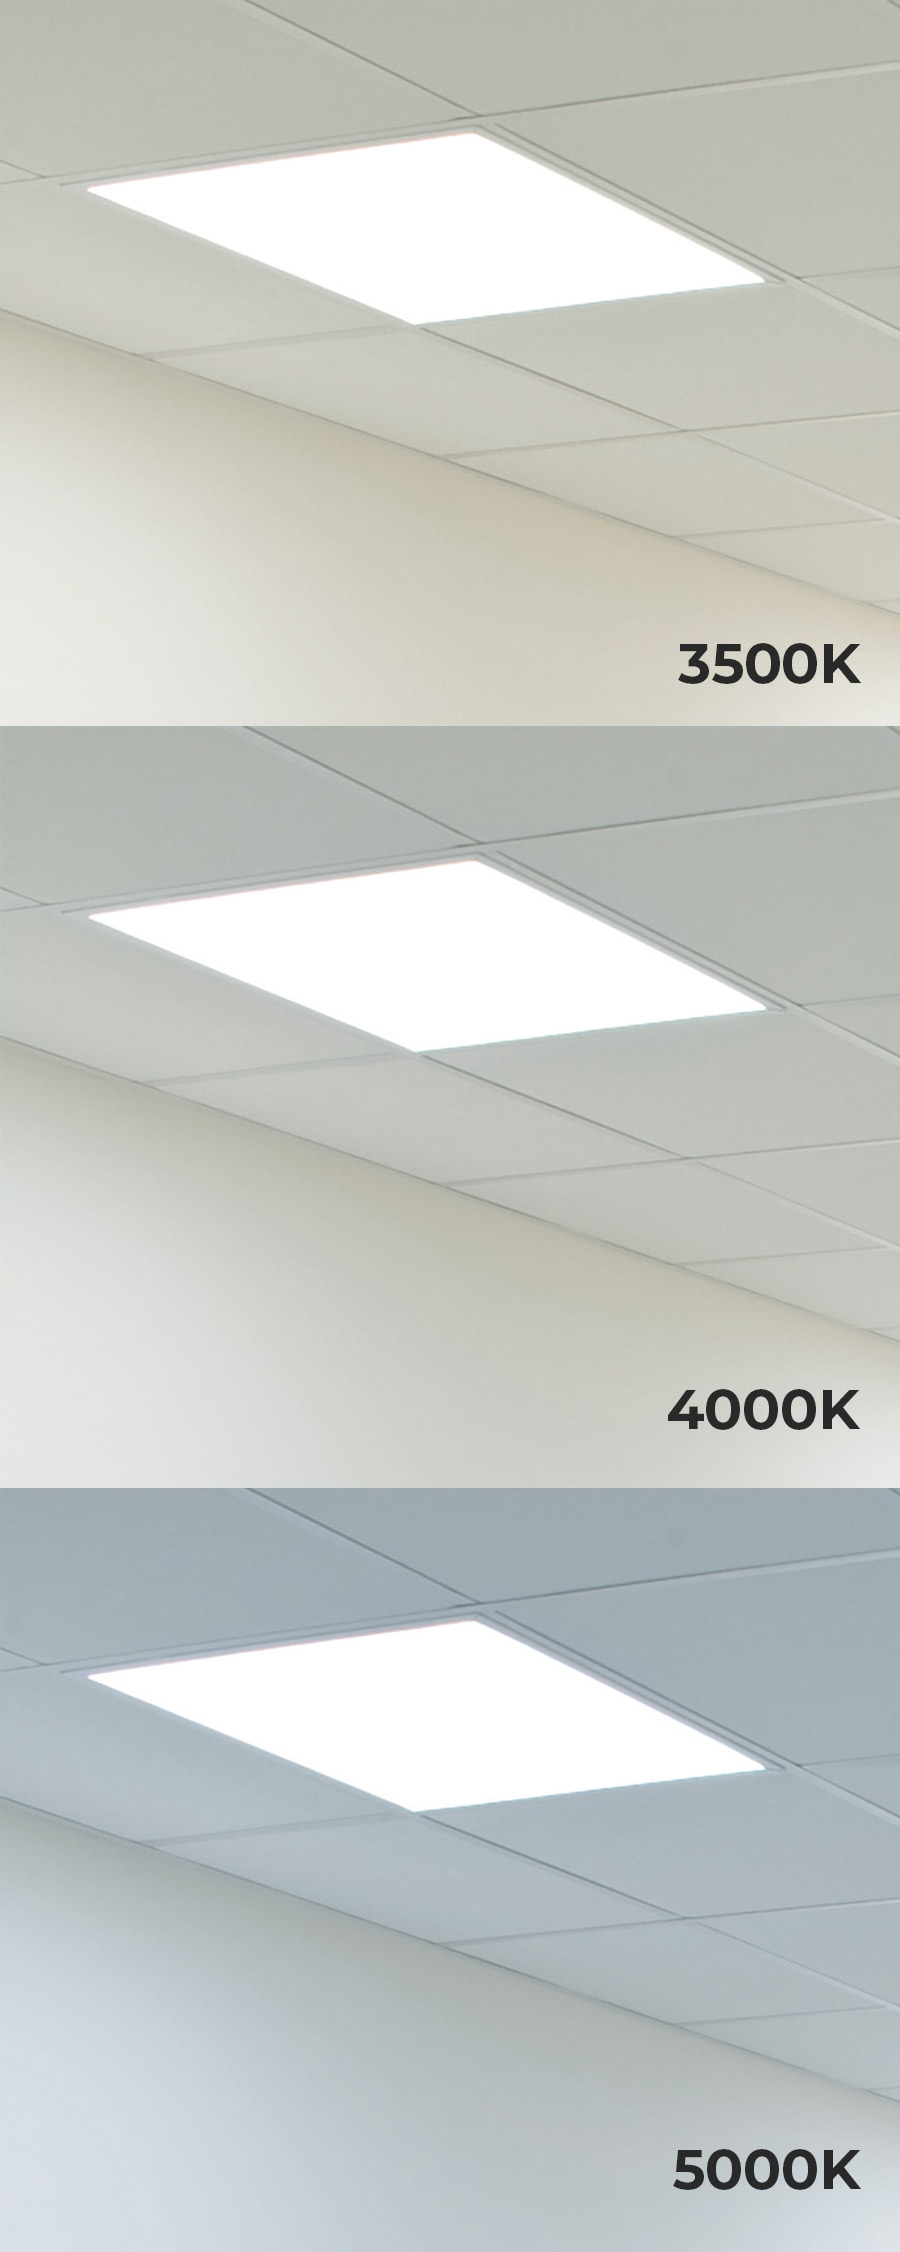 Panel Light Led Panel Light 2x2 4000 Lumens 40w Dimmable Even Glow Light Fixture Drop Ceiling 5000k 4000k 3500k